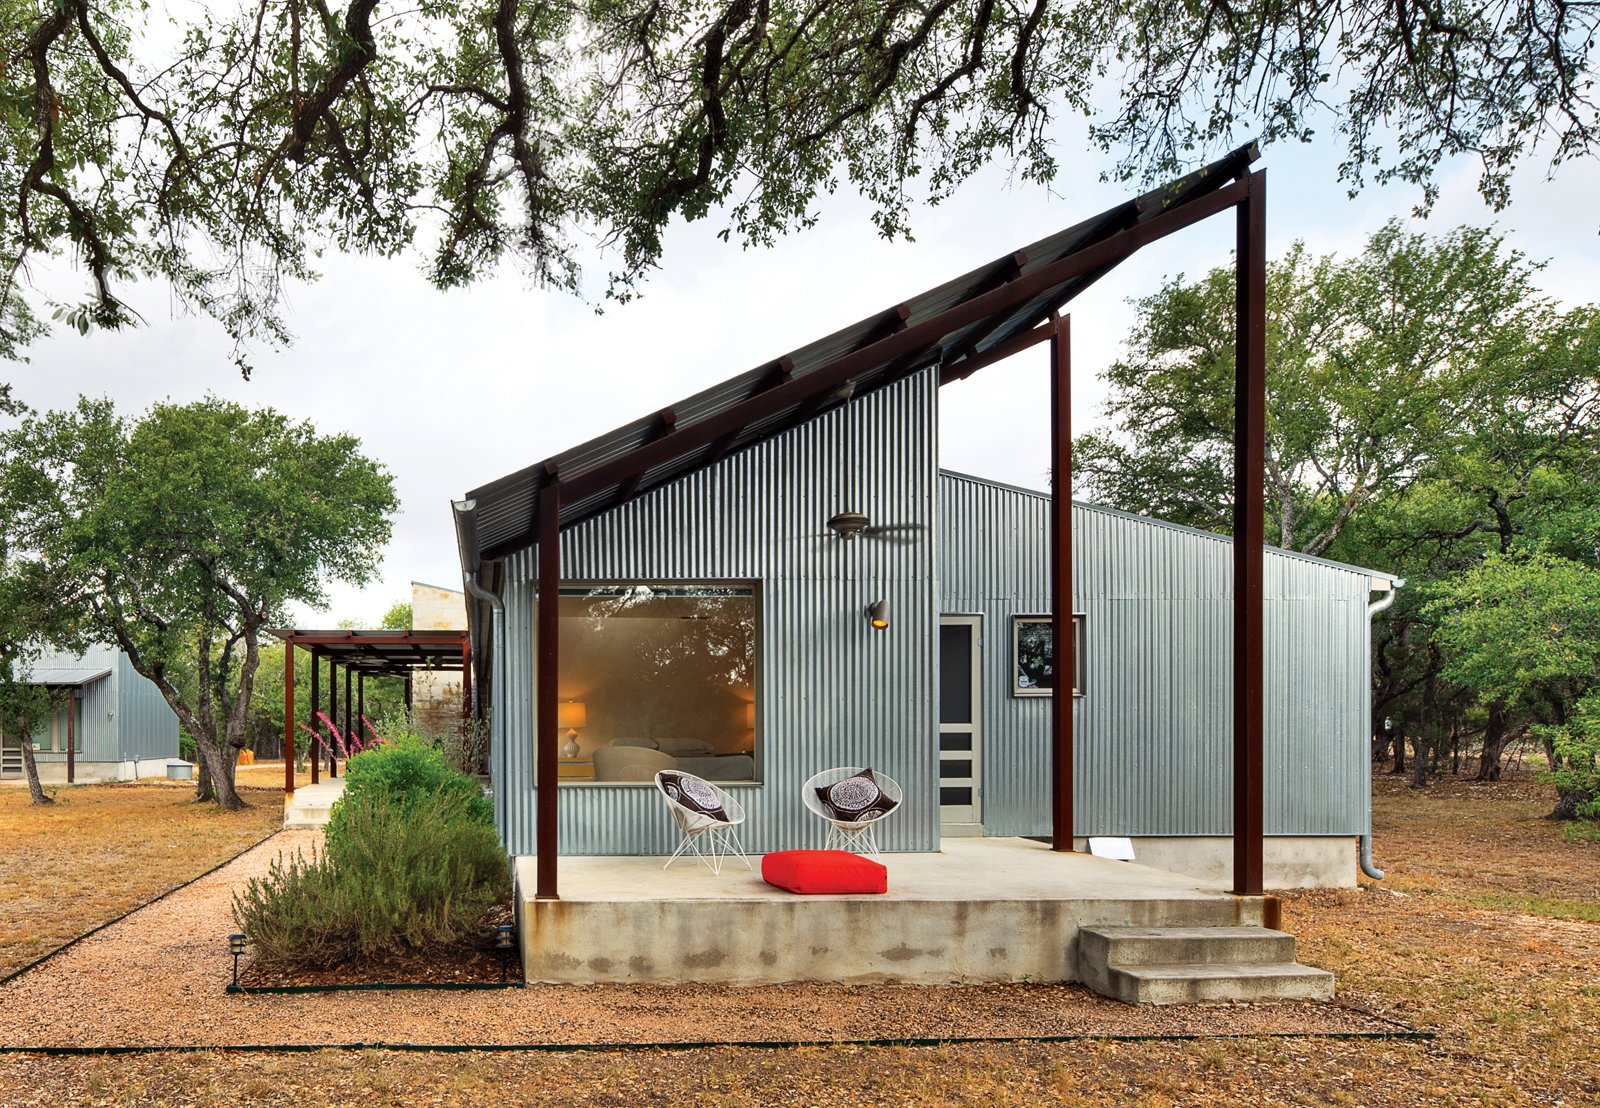 Exterior, Metal Siding Material, Metal Roof Material, and House Building Type For a cost-conscious 2,000-square-foot renovation located 30 minutes outside of Austin, Texas, architect Nick Deaver took a look around for inspiration. He spied galvanized metal cladding on the region's sheds and co-opted the inexpensive, resilient material for his own design.  Best Photos from An Affordable Duplex Transformation in Texas